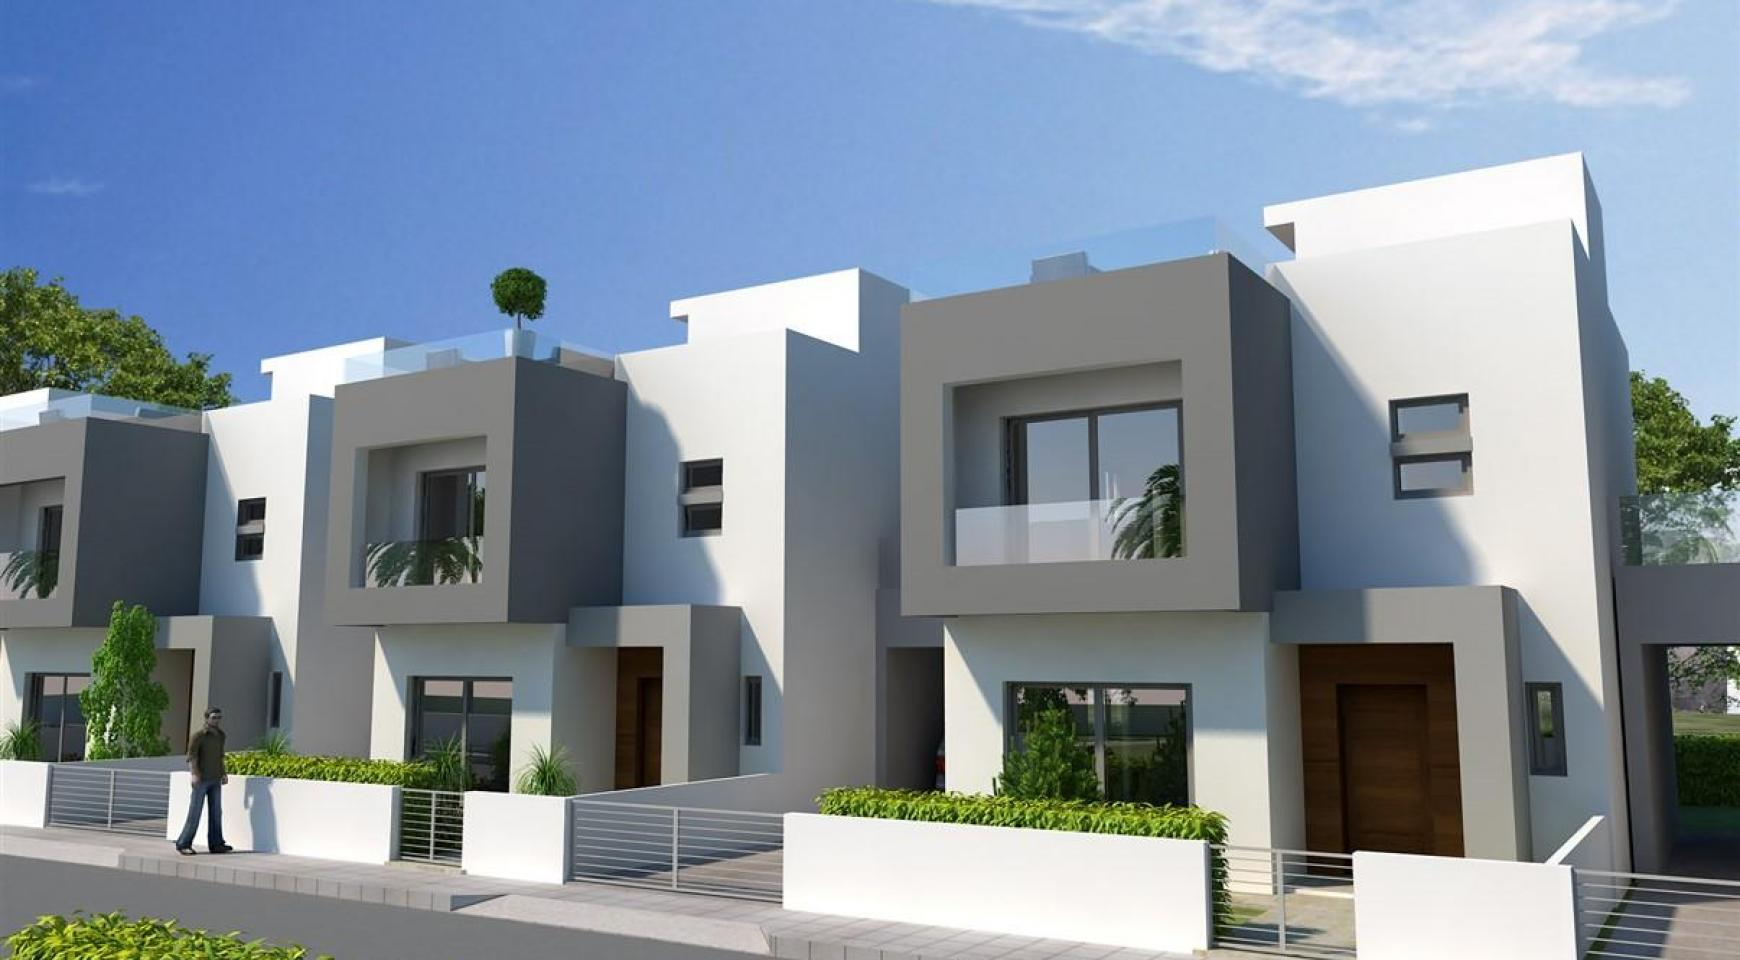 3 Bedroom Villa in a New Project - 1